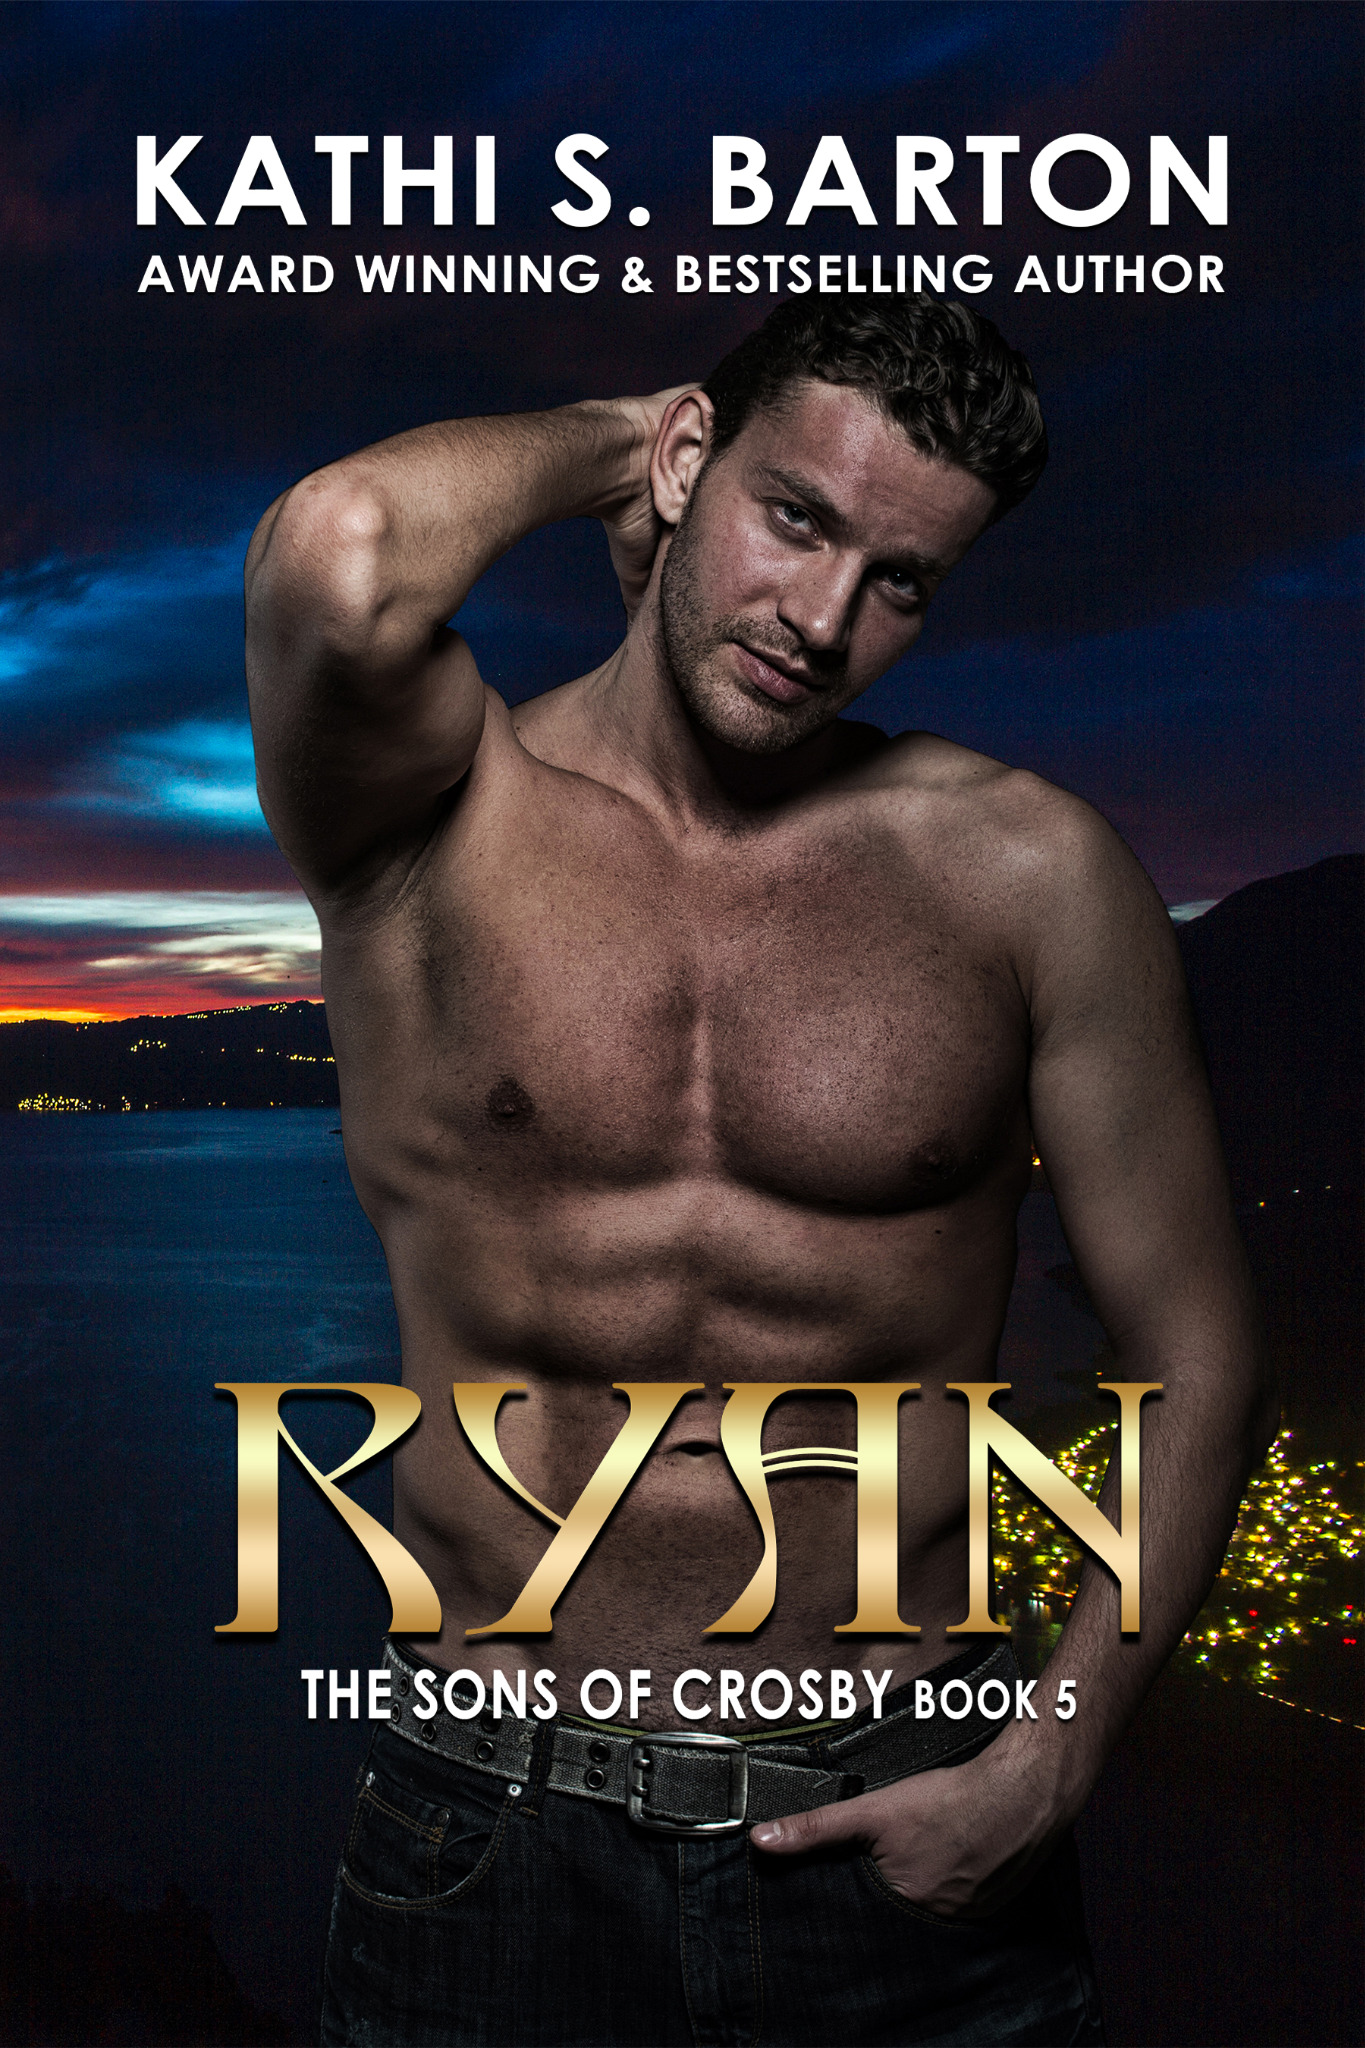 Ryan - The Sons of Crosby Book 5